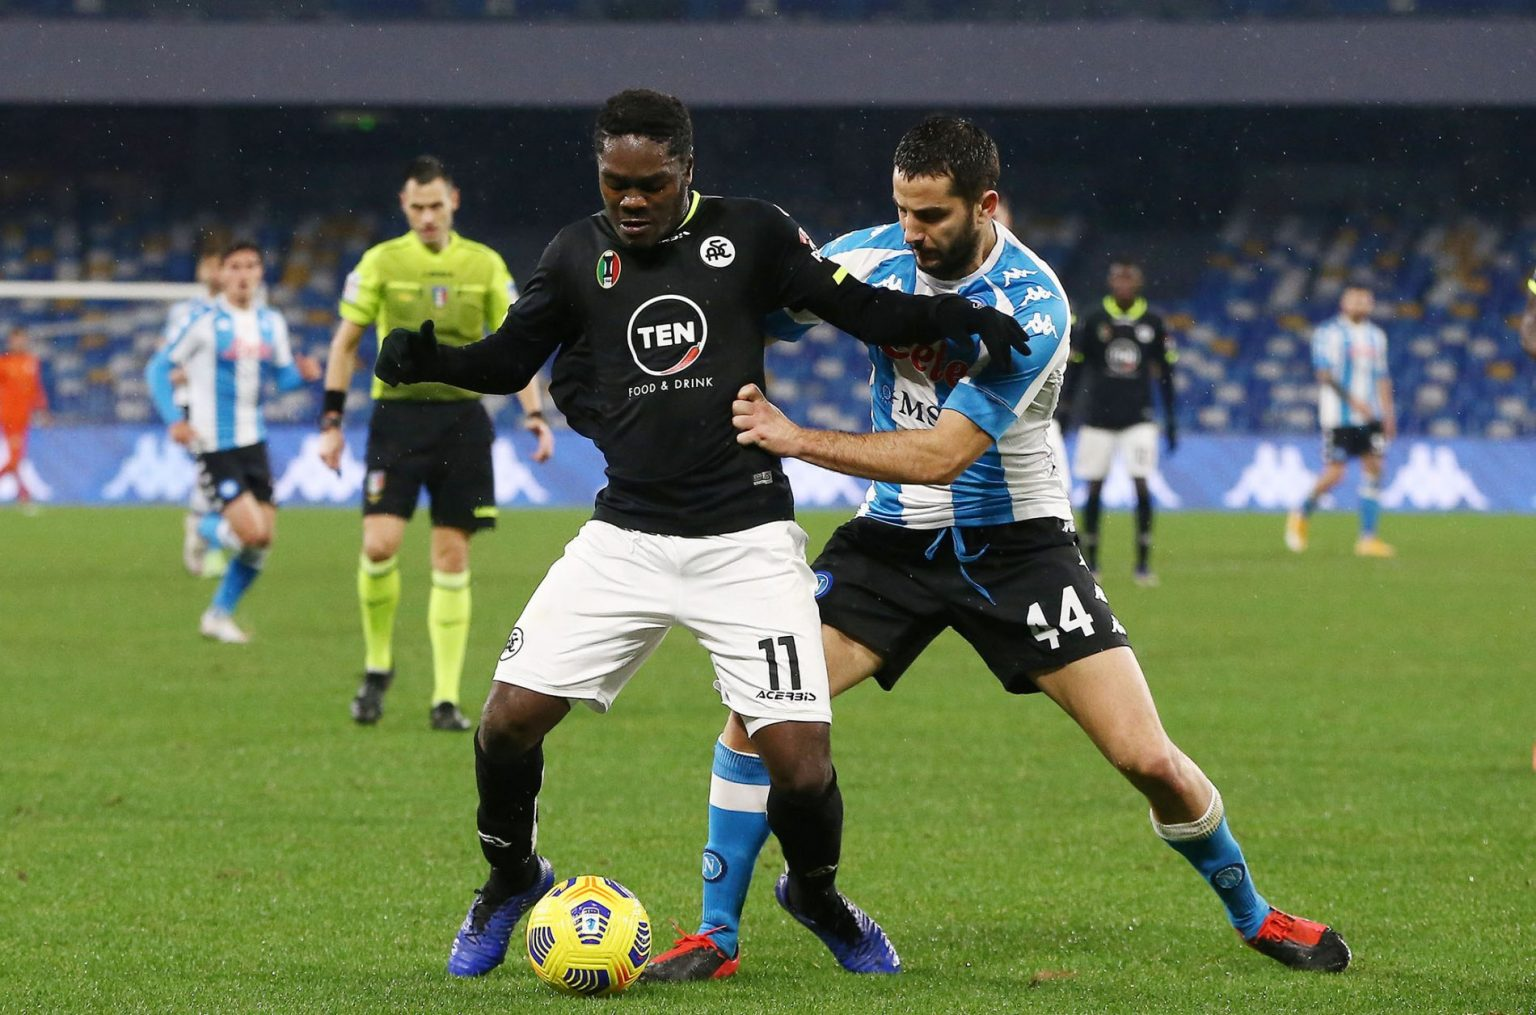 Former Torino manager Moreno Longo delighted with contribution to Emmanuel Gyasi's career